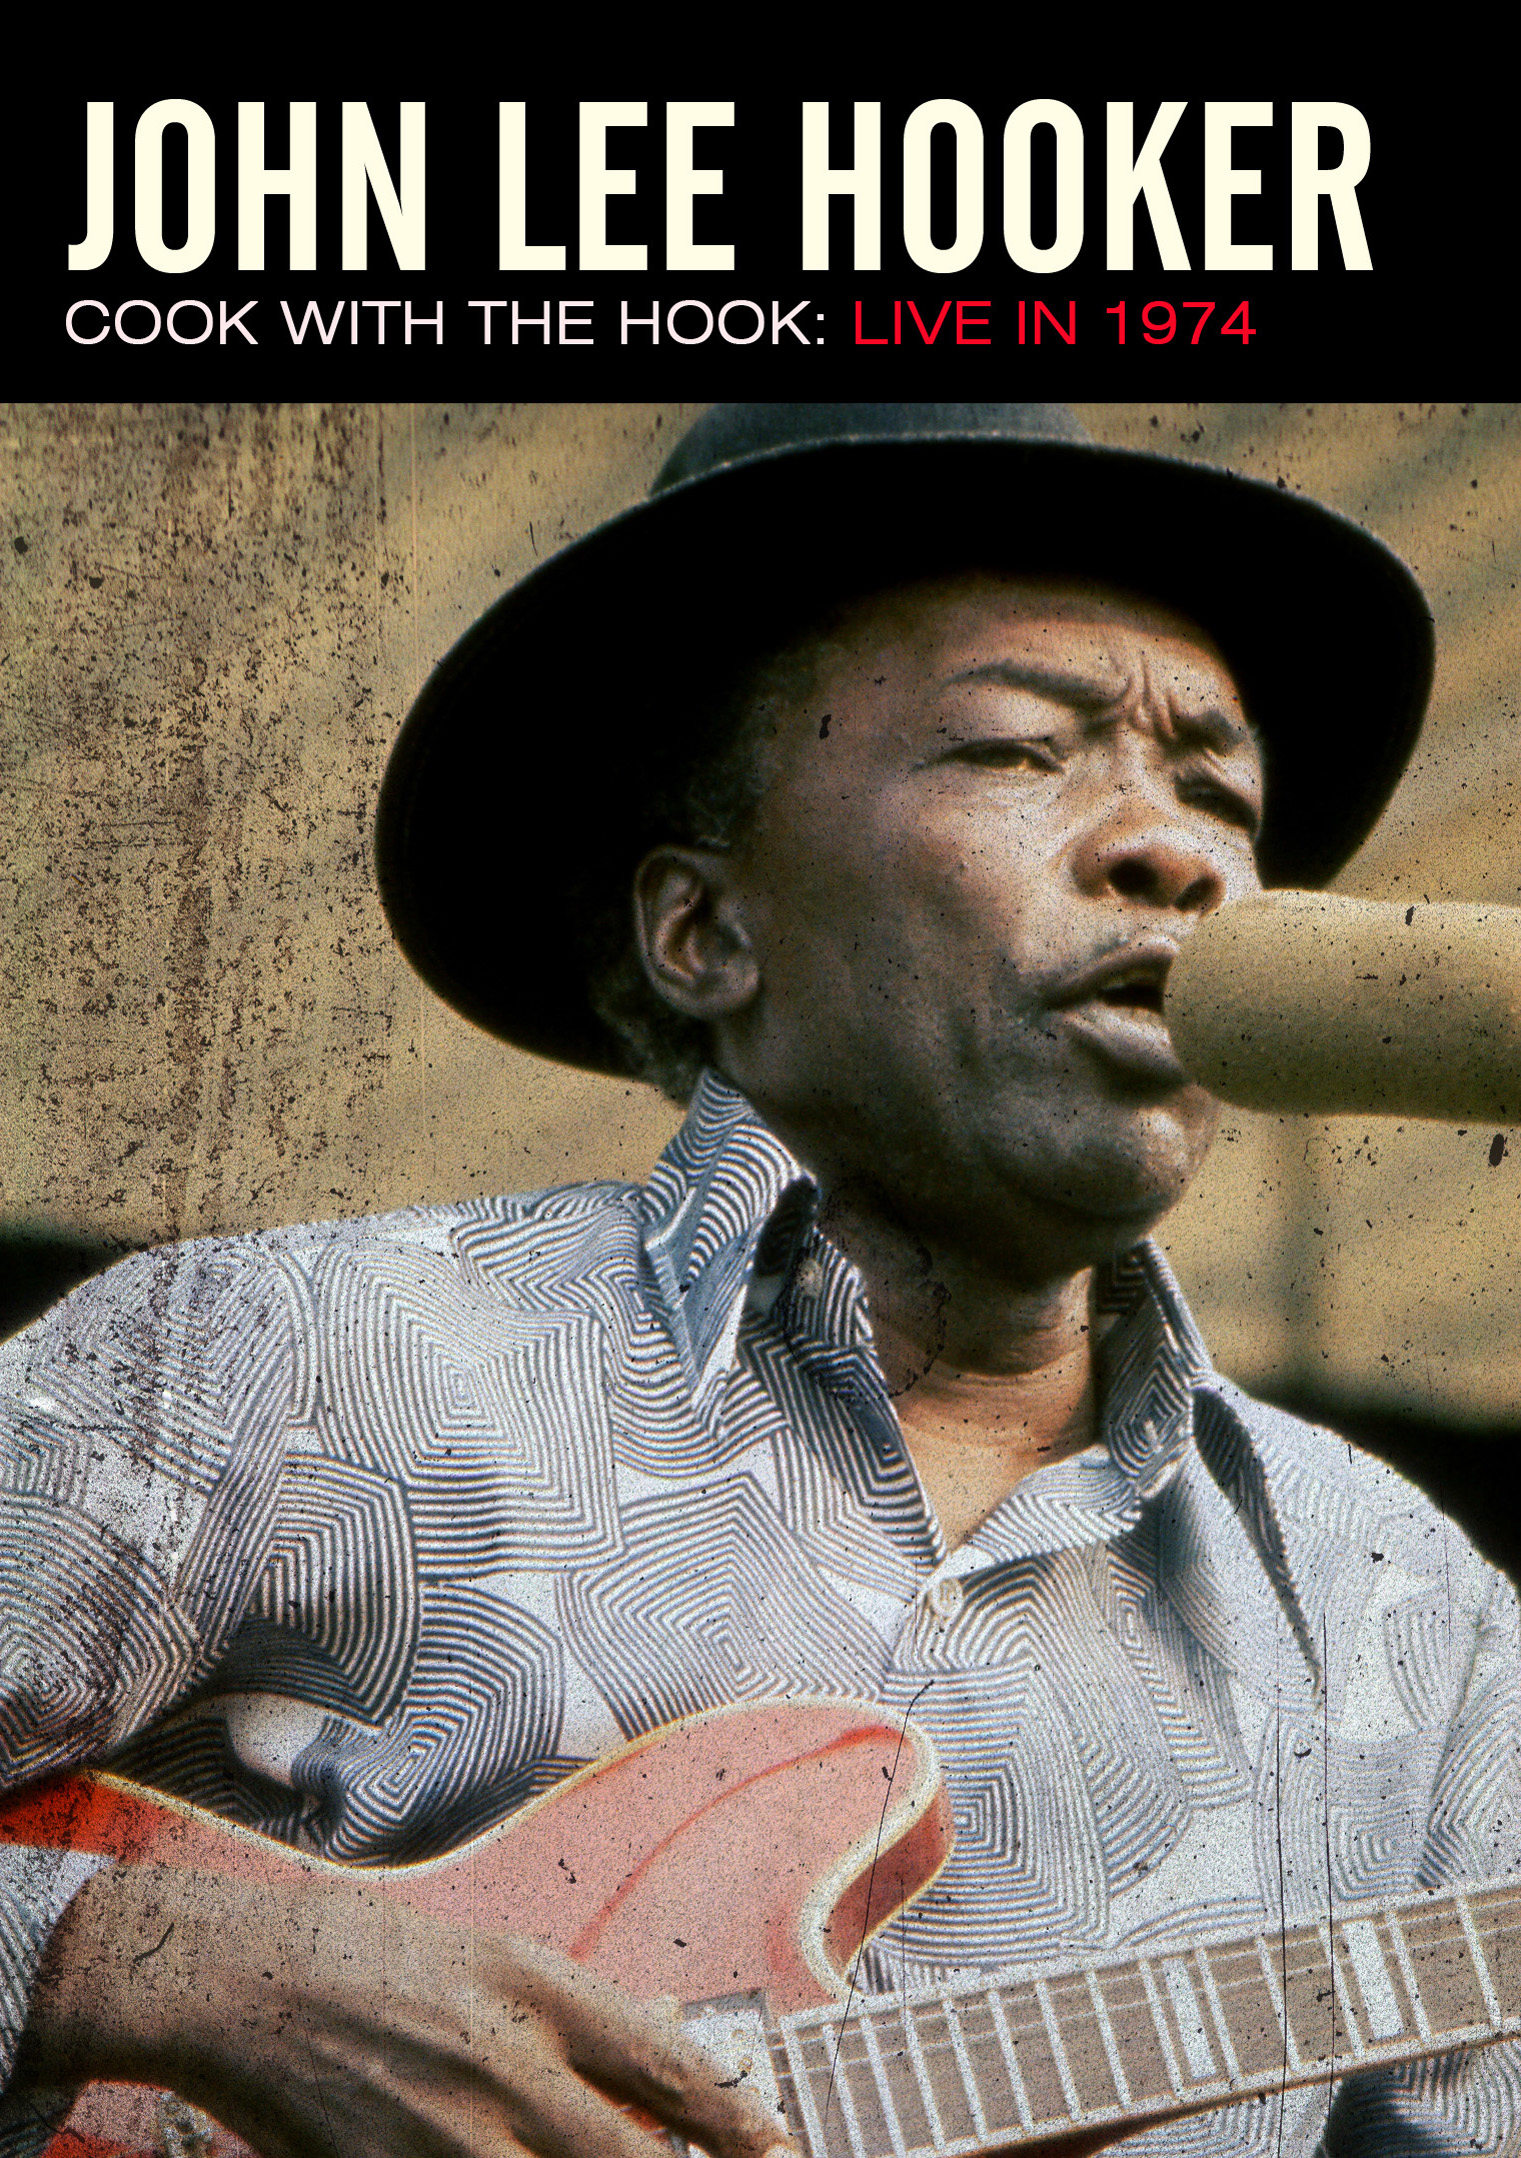 John Lee Hooker: Cook with the Hook - Live in 1974